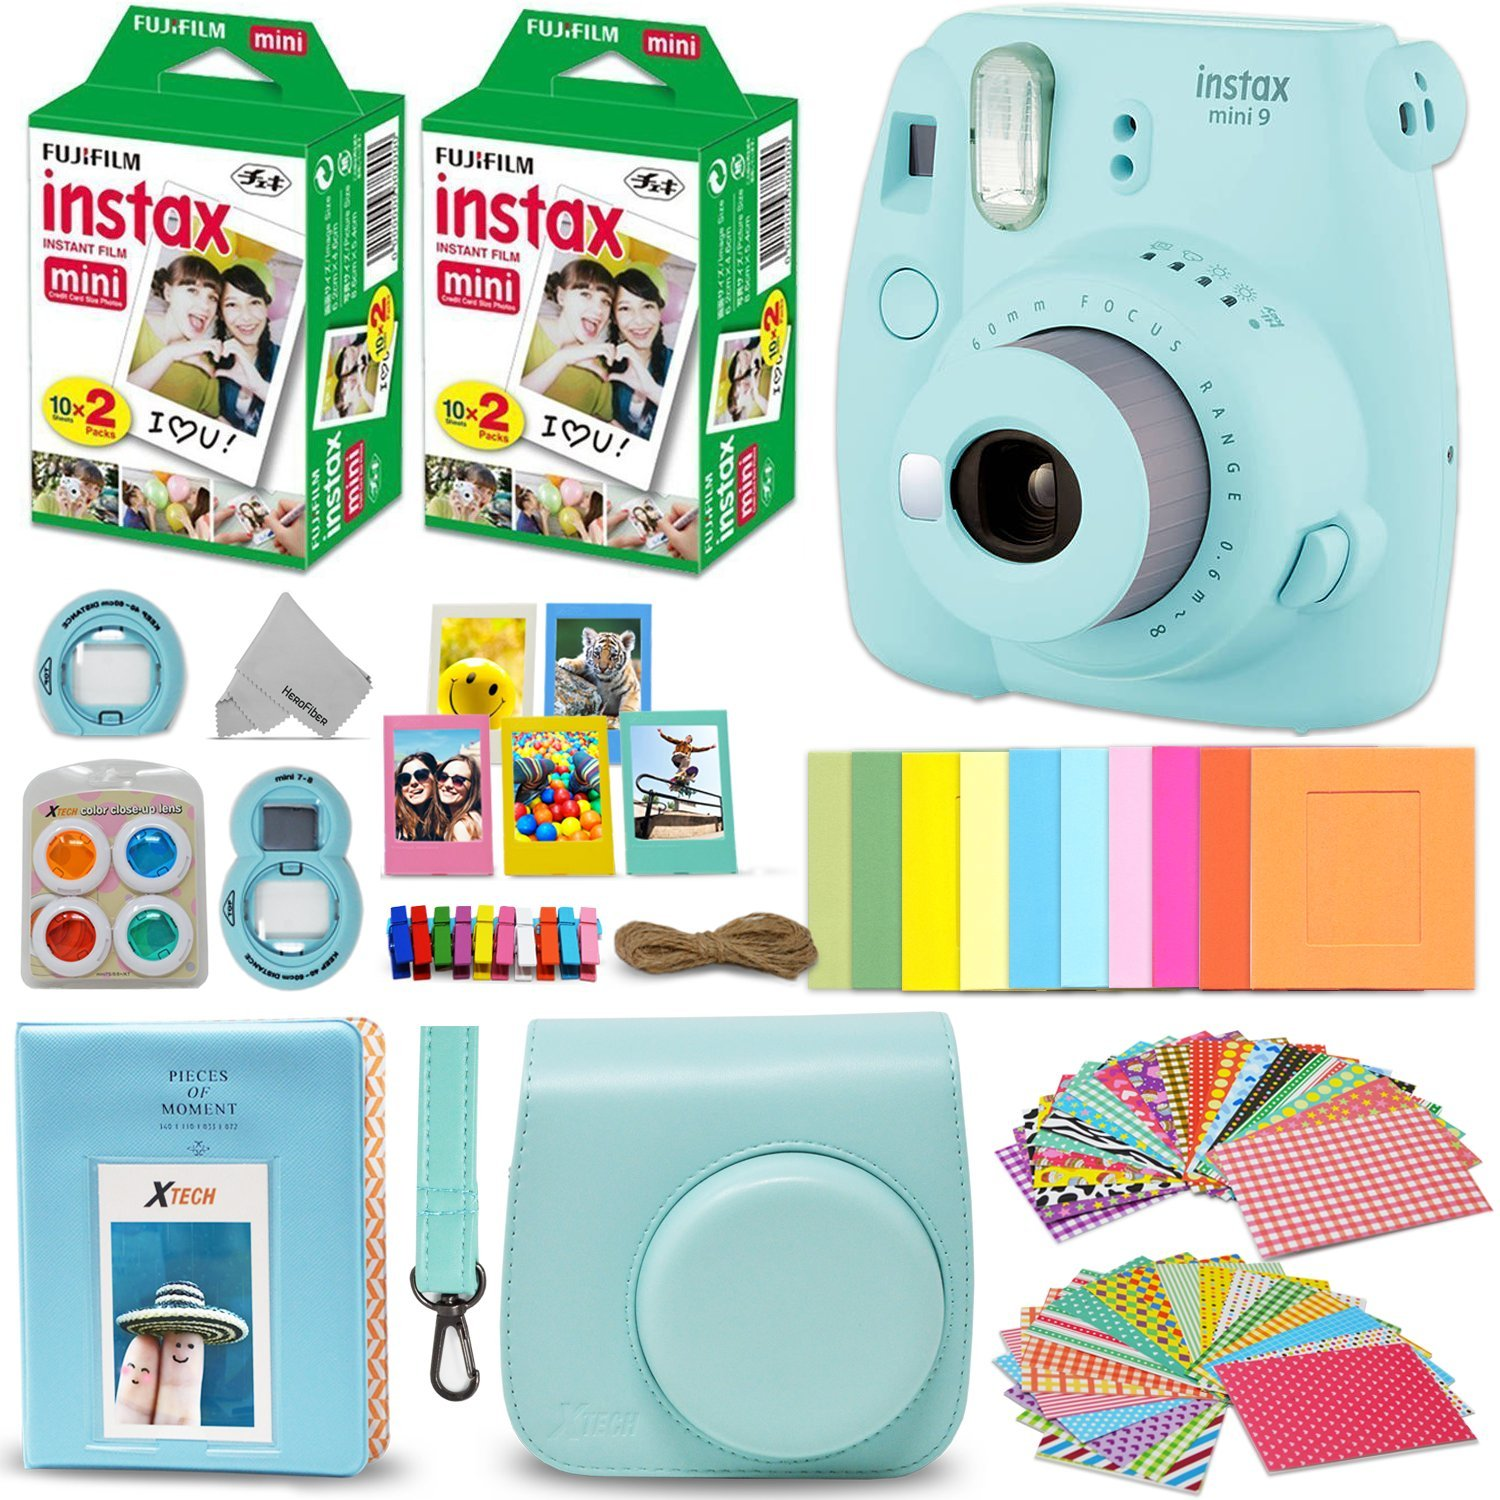 Fujifilm Instax Mini 9 Instant Camera ICE BLUE + Fuji INSTAX Film (40 Sheets) + Accessories Kit Bundle + Custom Case with Strap + Assorted Frames + Photo Album + 60 Colorful Sticker Frames + MORE by HeroFiber